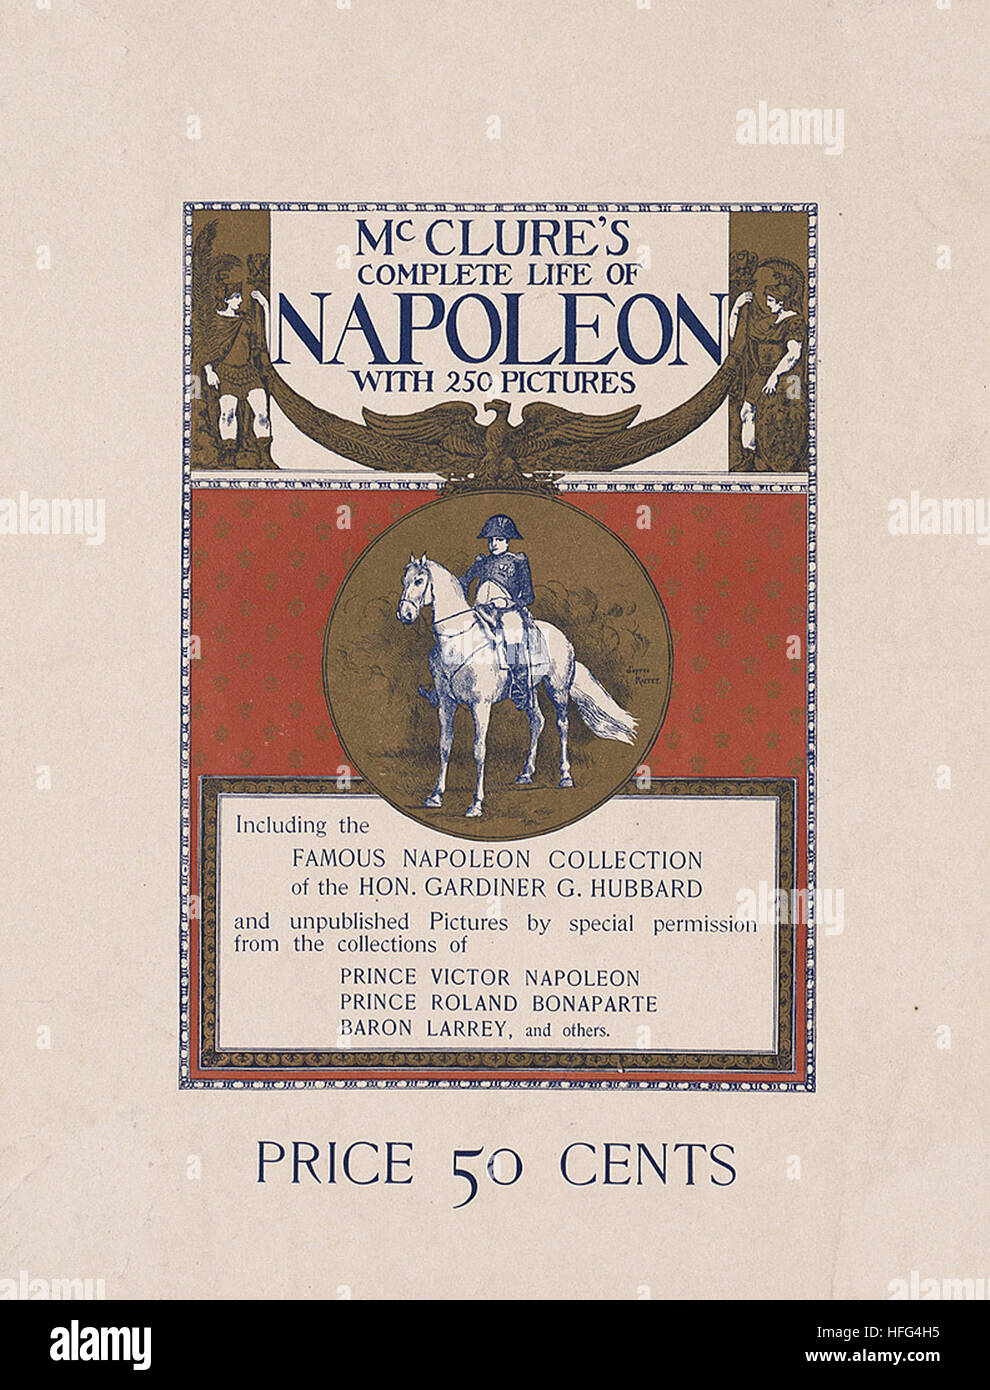 McClure's complete life of Napoleon with 250 pictures - Stock Image